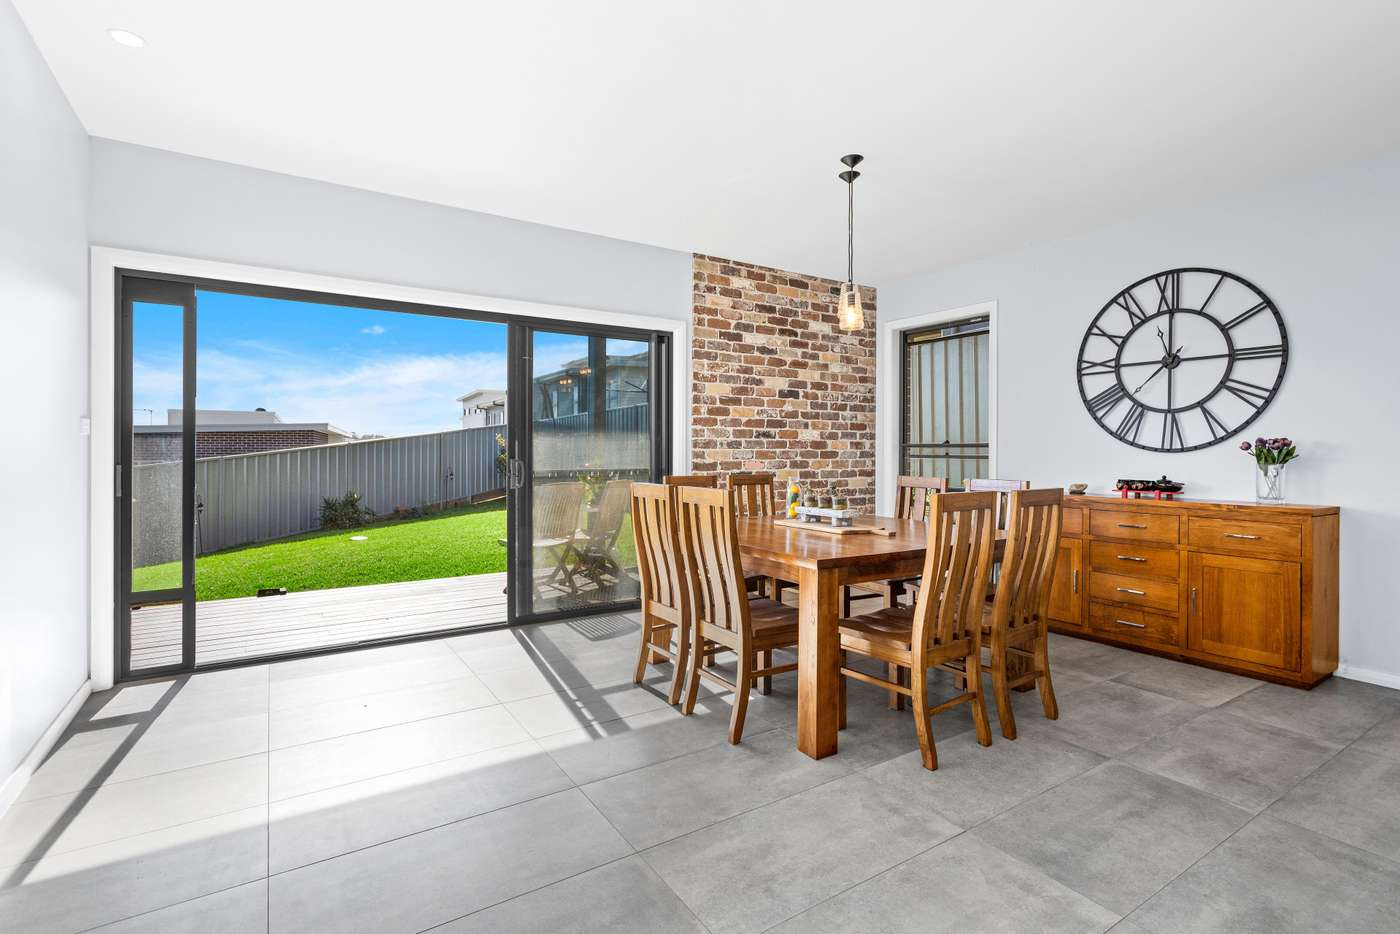 Fifth view of Homely house listing, 20 Bonville Parkway, Shell Cove NSW 2529